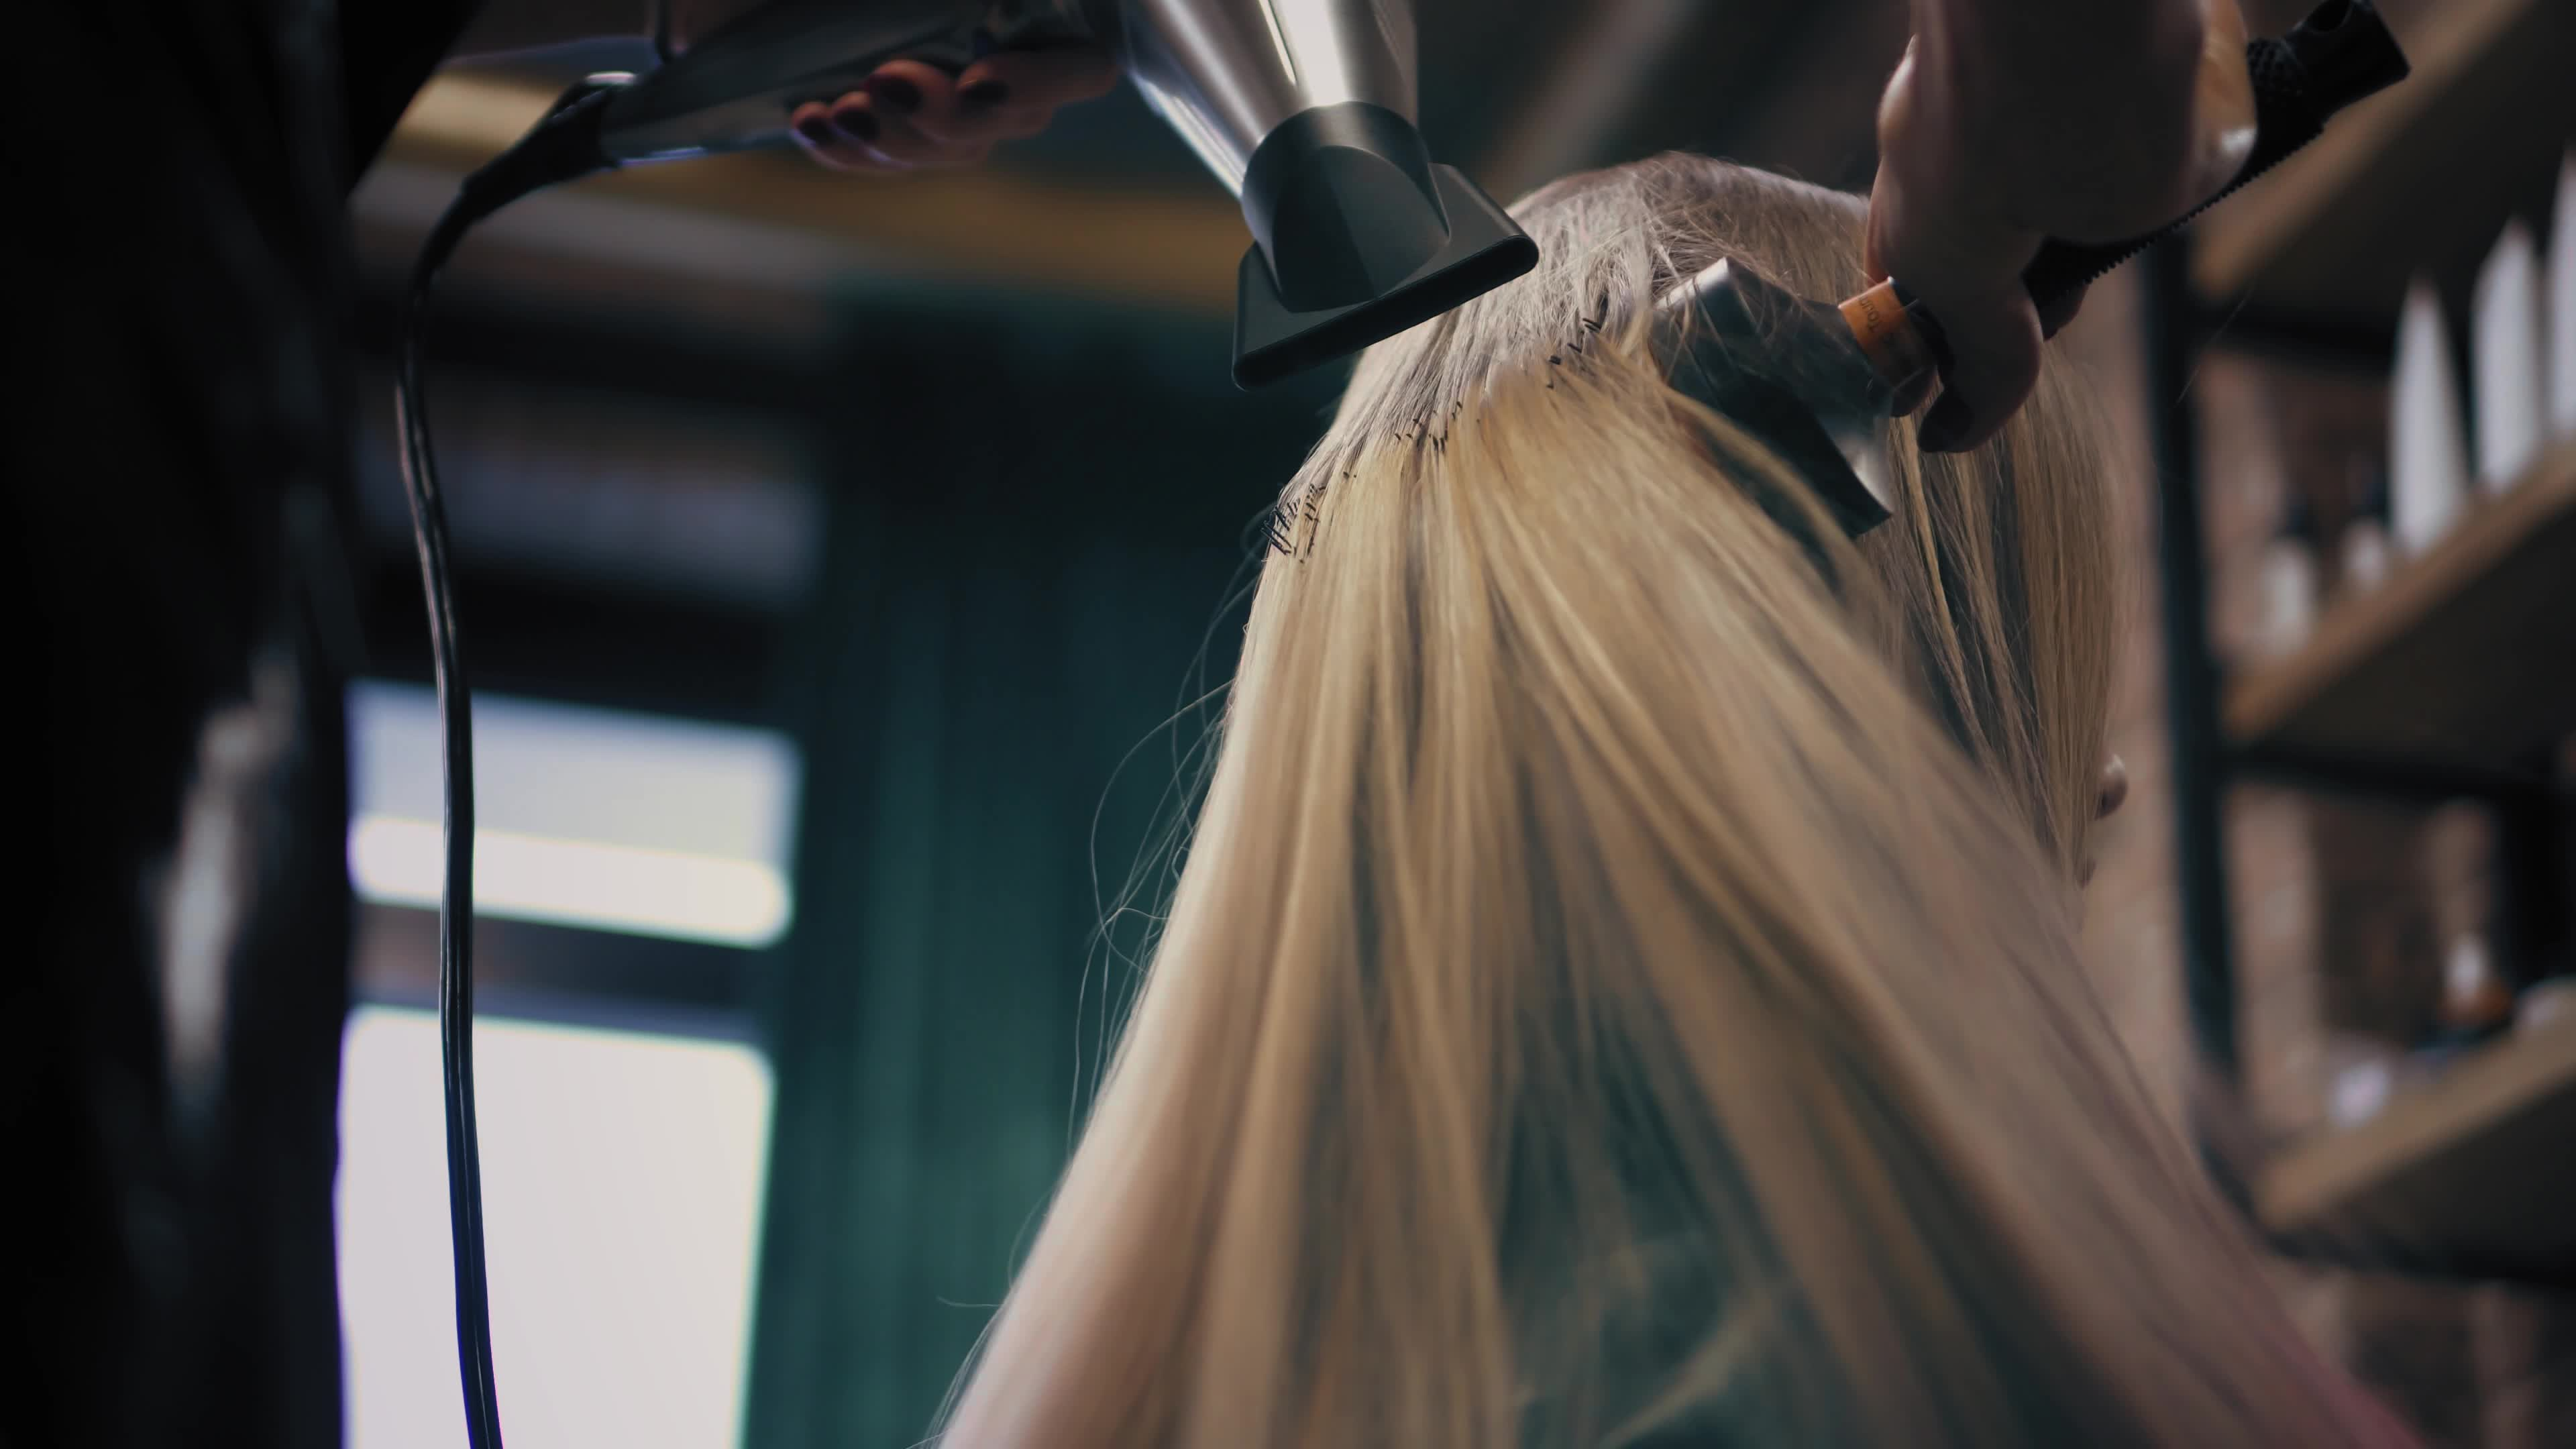 Young woman is sitting in chair in beauty salon while hairdresser dries her hair with round hair brush and hairdryer. Straightens hair. Down-up view.